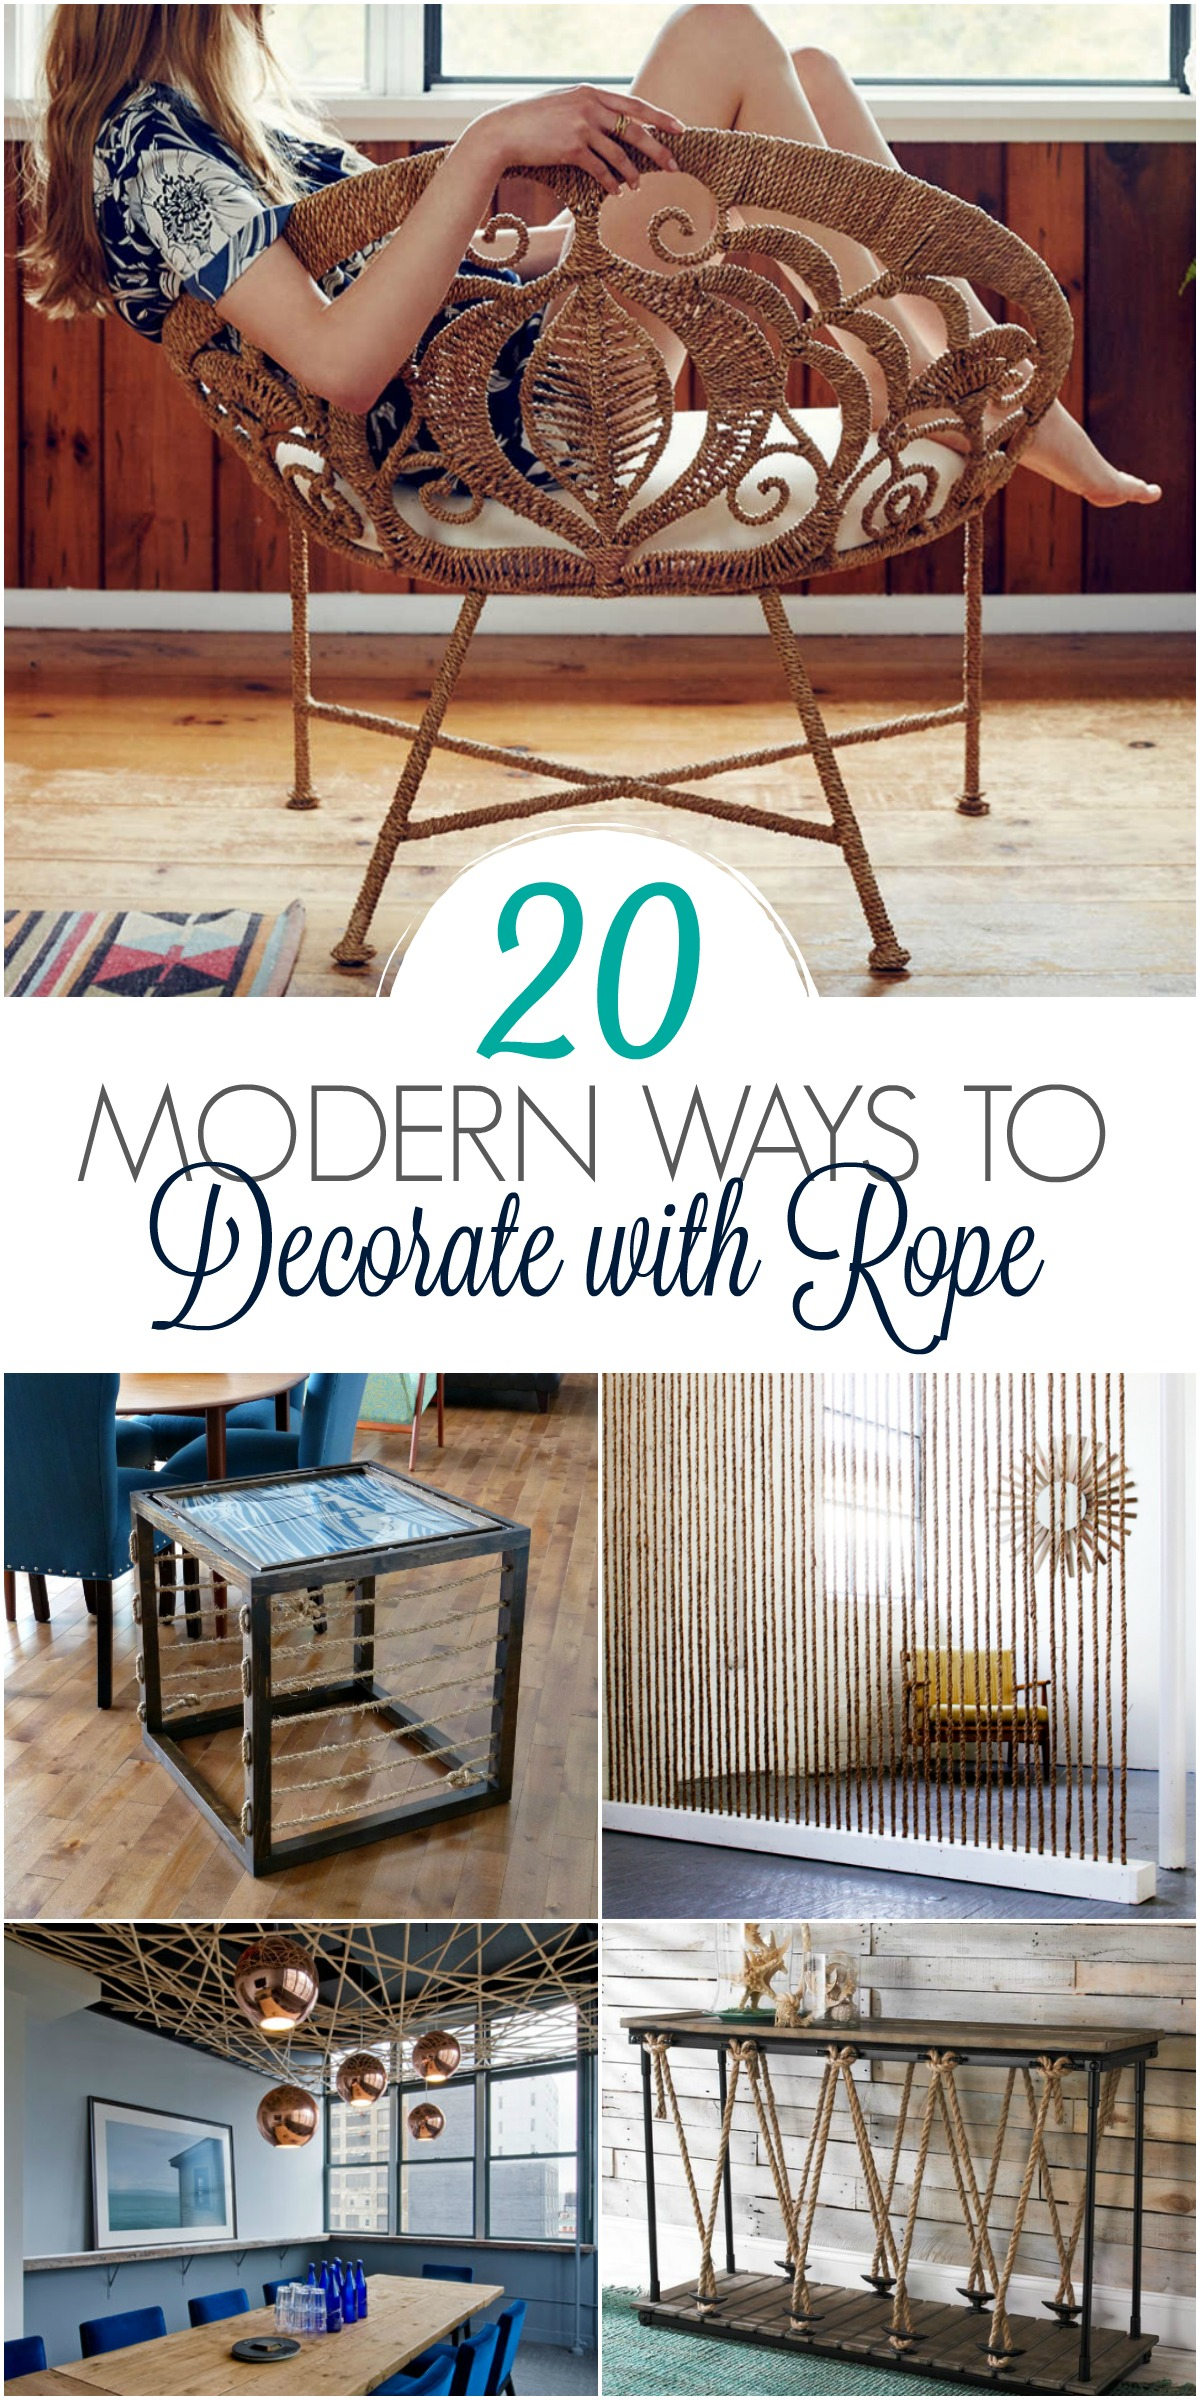 Borrow these ideas! Decor, DIY, and Design Inspiration - 20 MODERN WAYS TO DECORATE WITH ROPE. Not for coastal decor anymore! Mix any style with rope, from mid-century modern to boho! #rope #moderncoastal #boho #decorinspiration #diyhomedecor